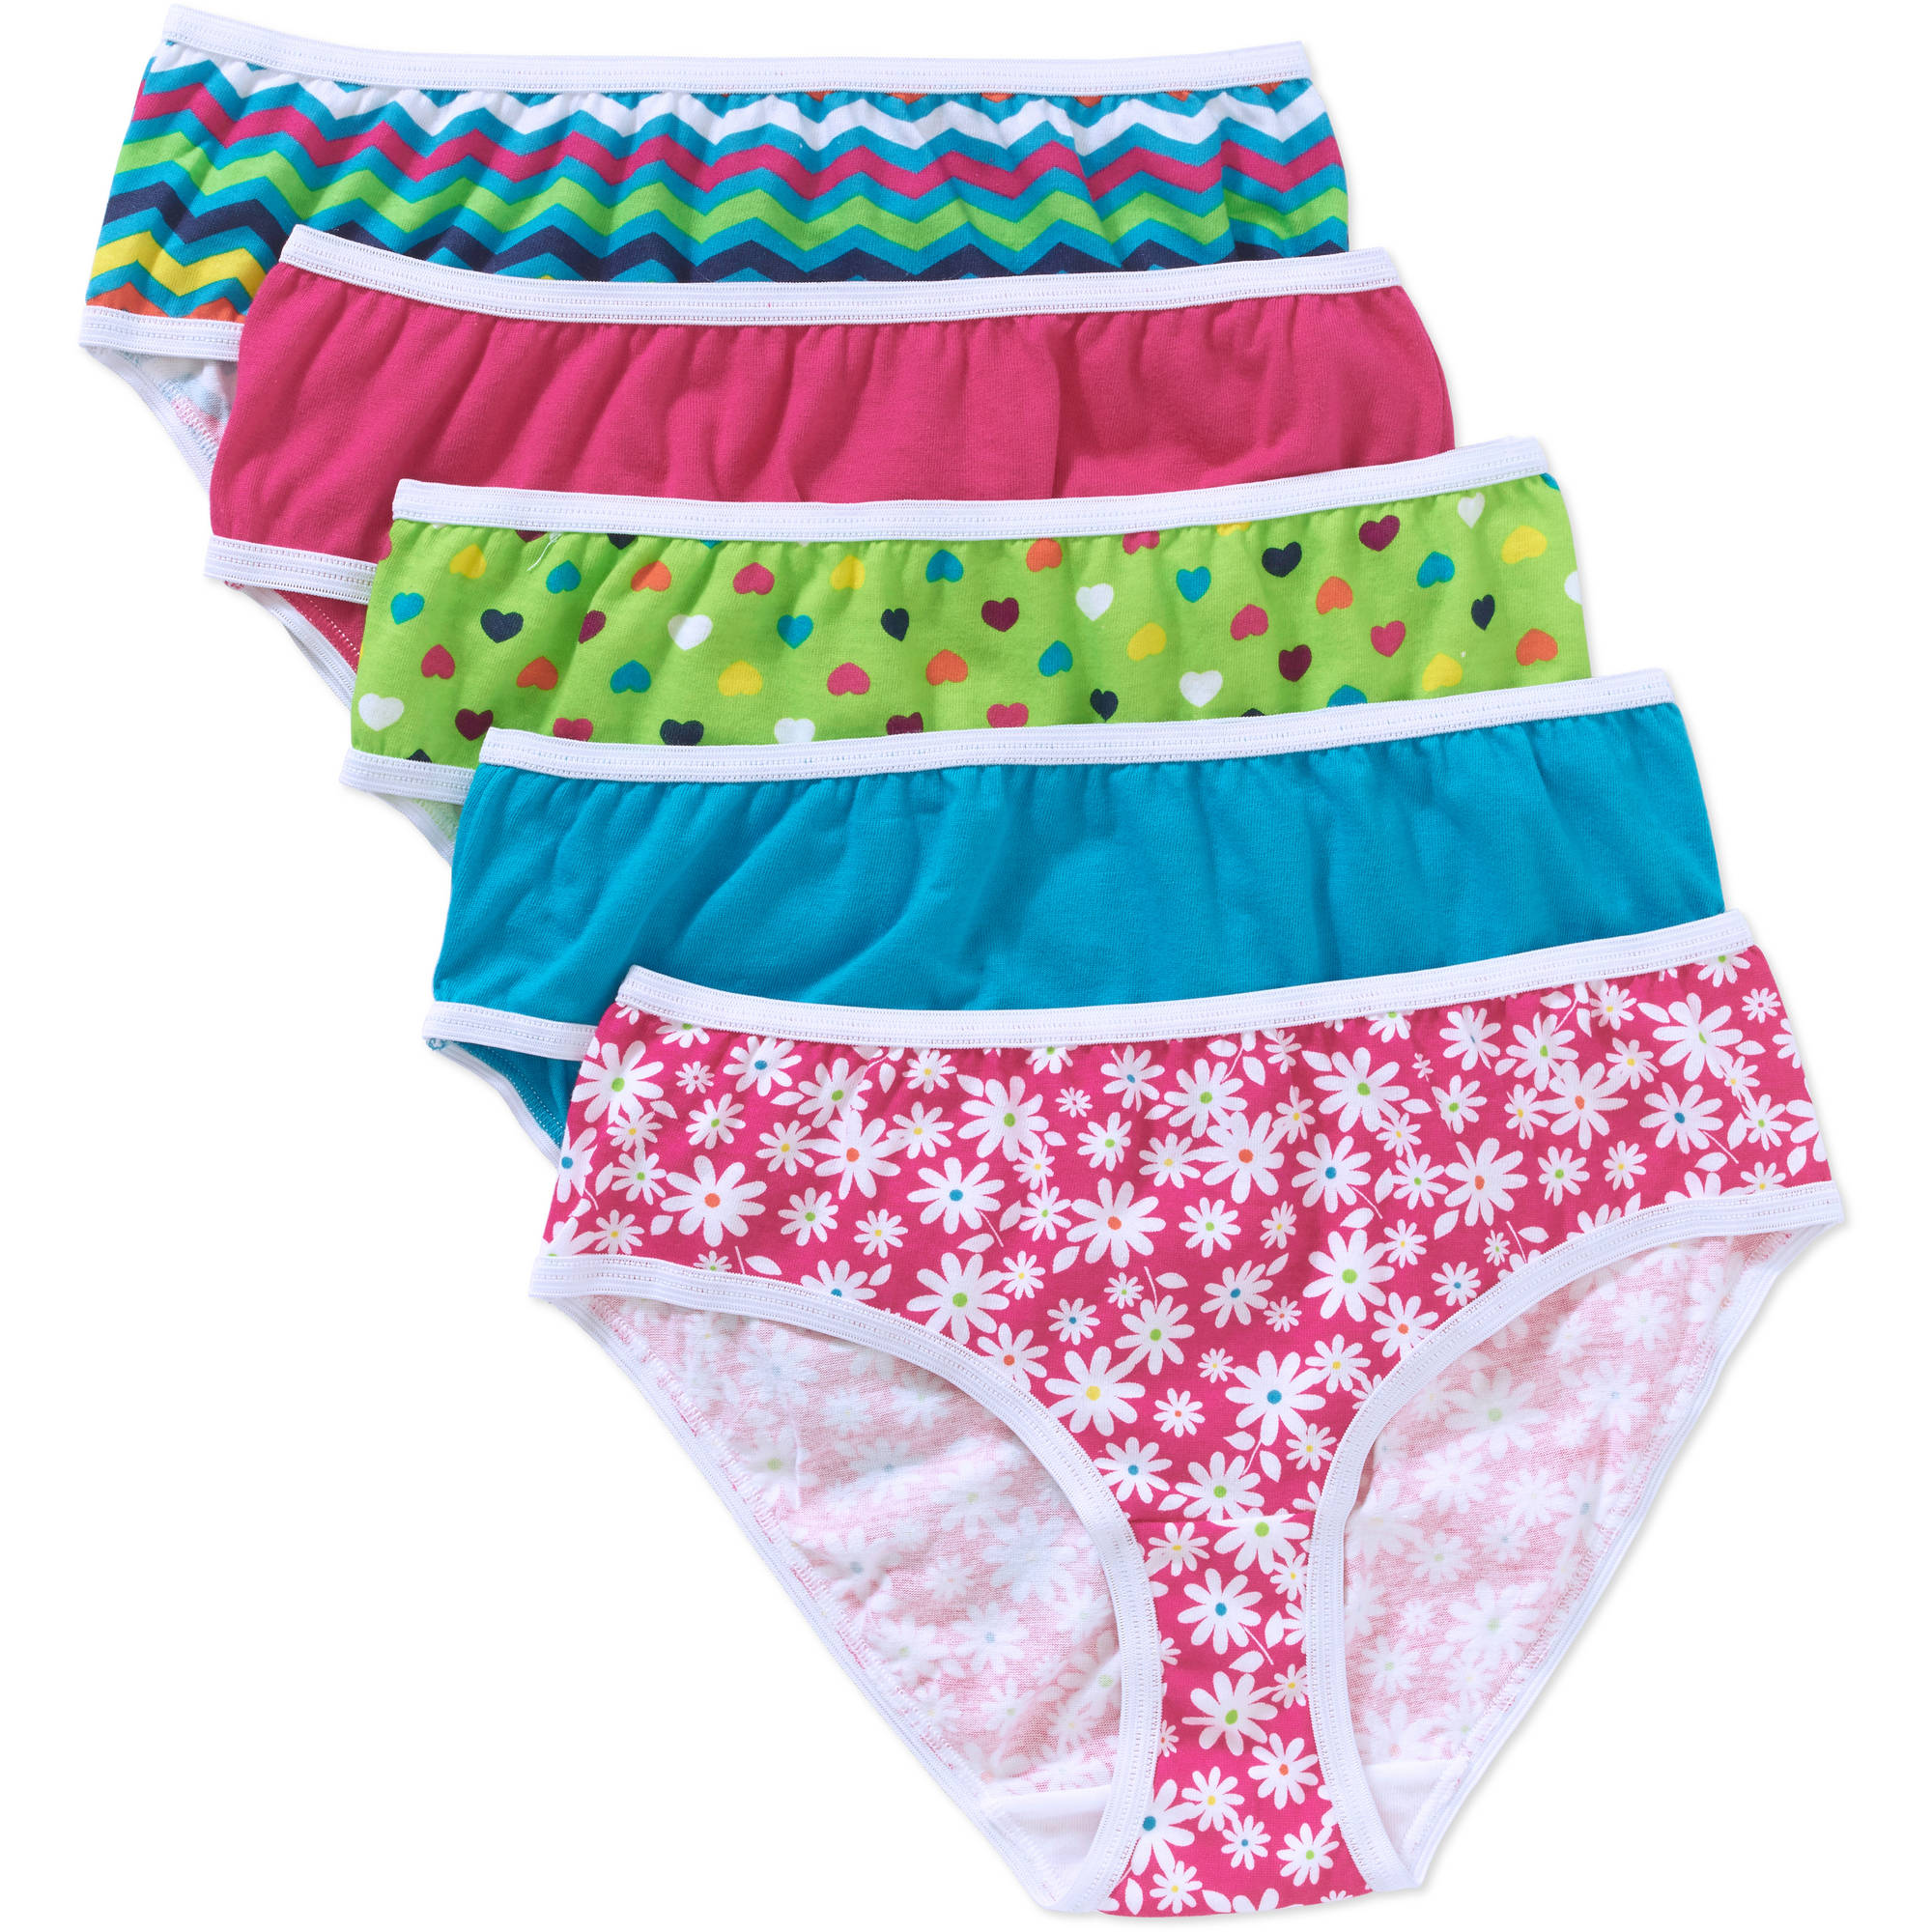 Faded Glory Girls' Brief 5 Pack